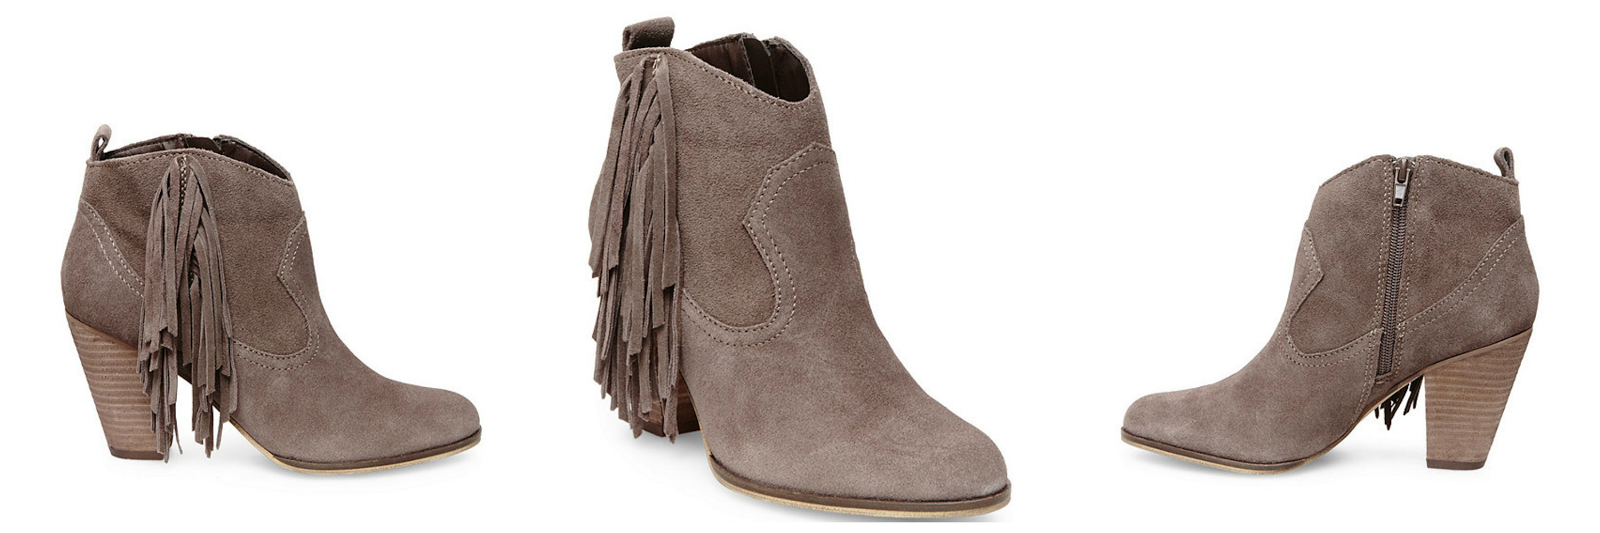 Look for Less: Steve Madden Fringe Booties - Sensible Stylista